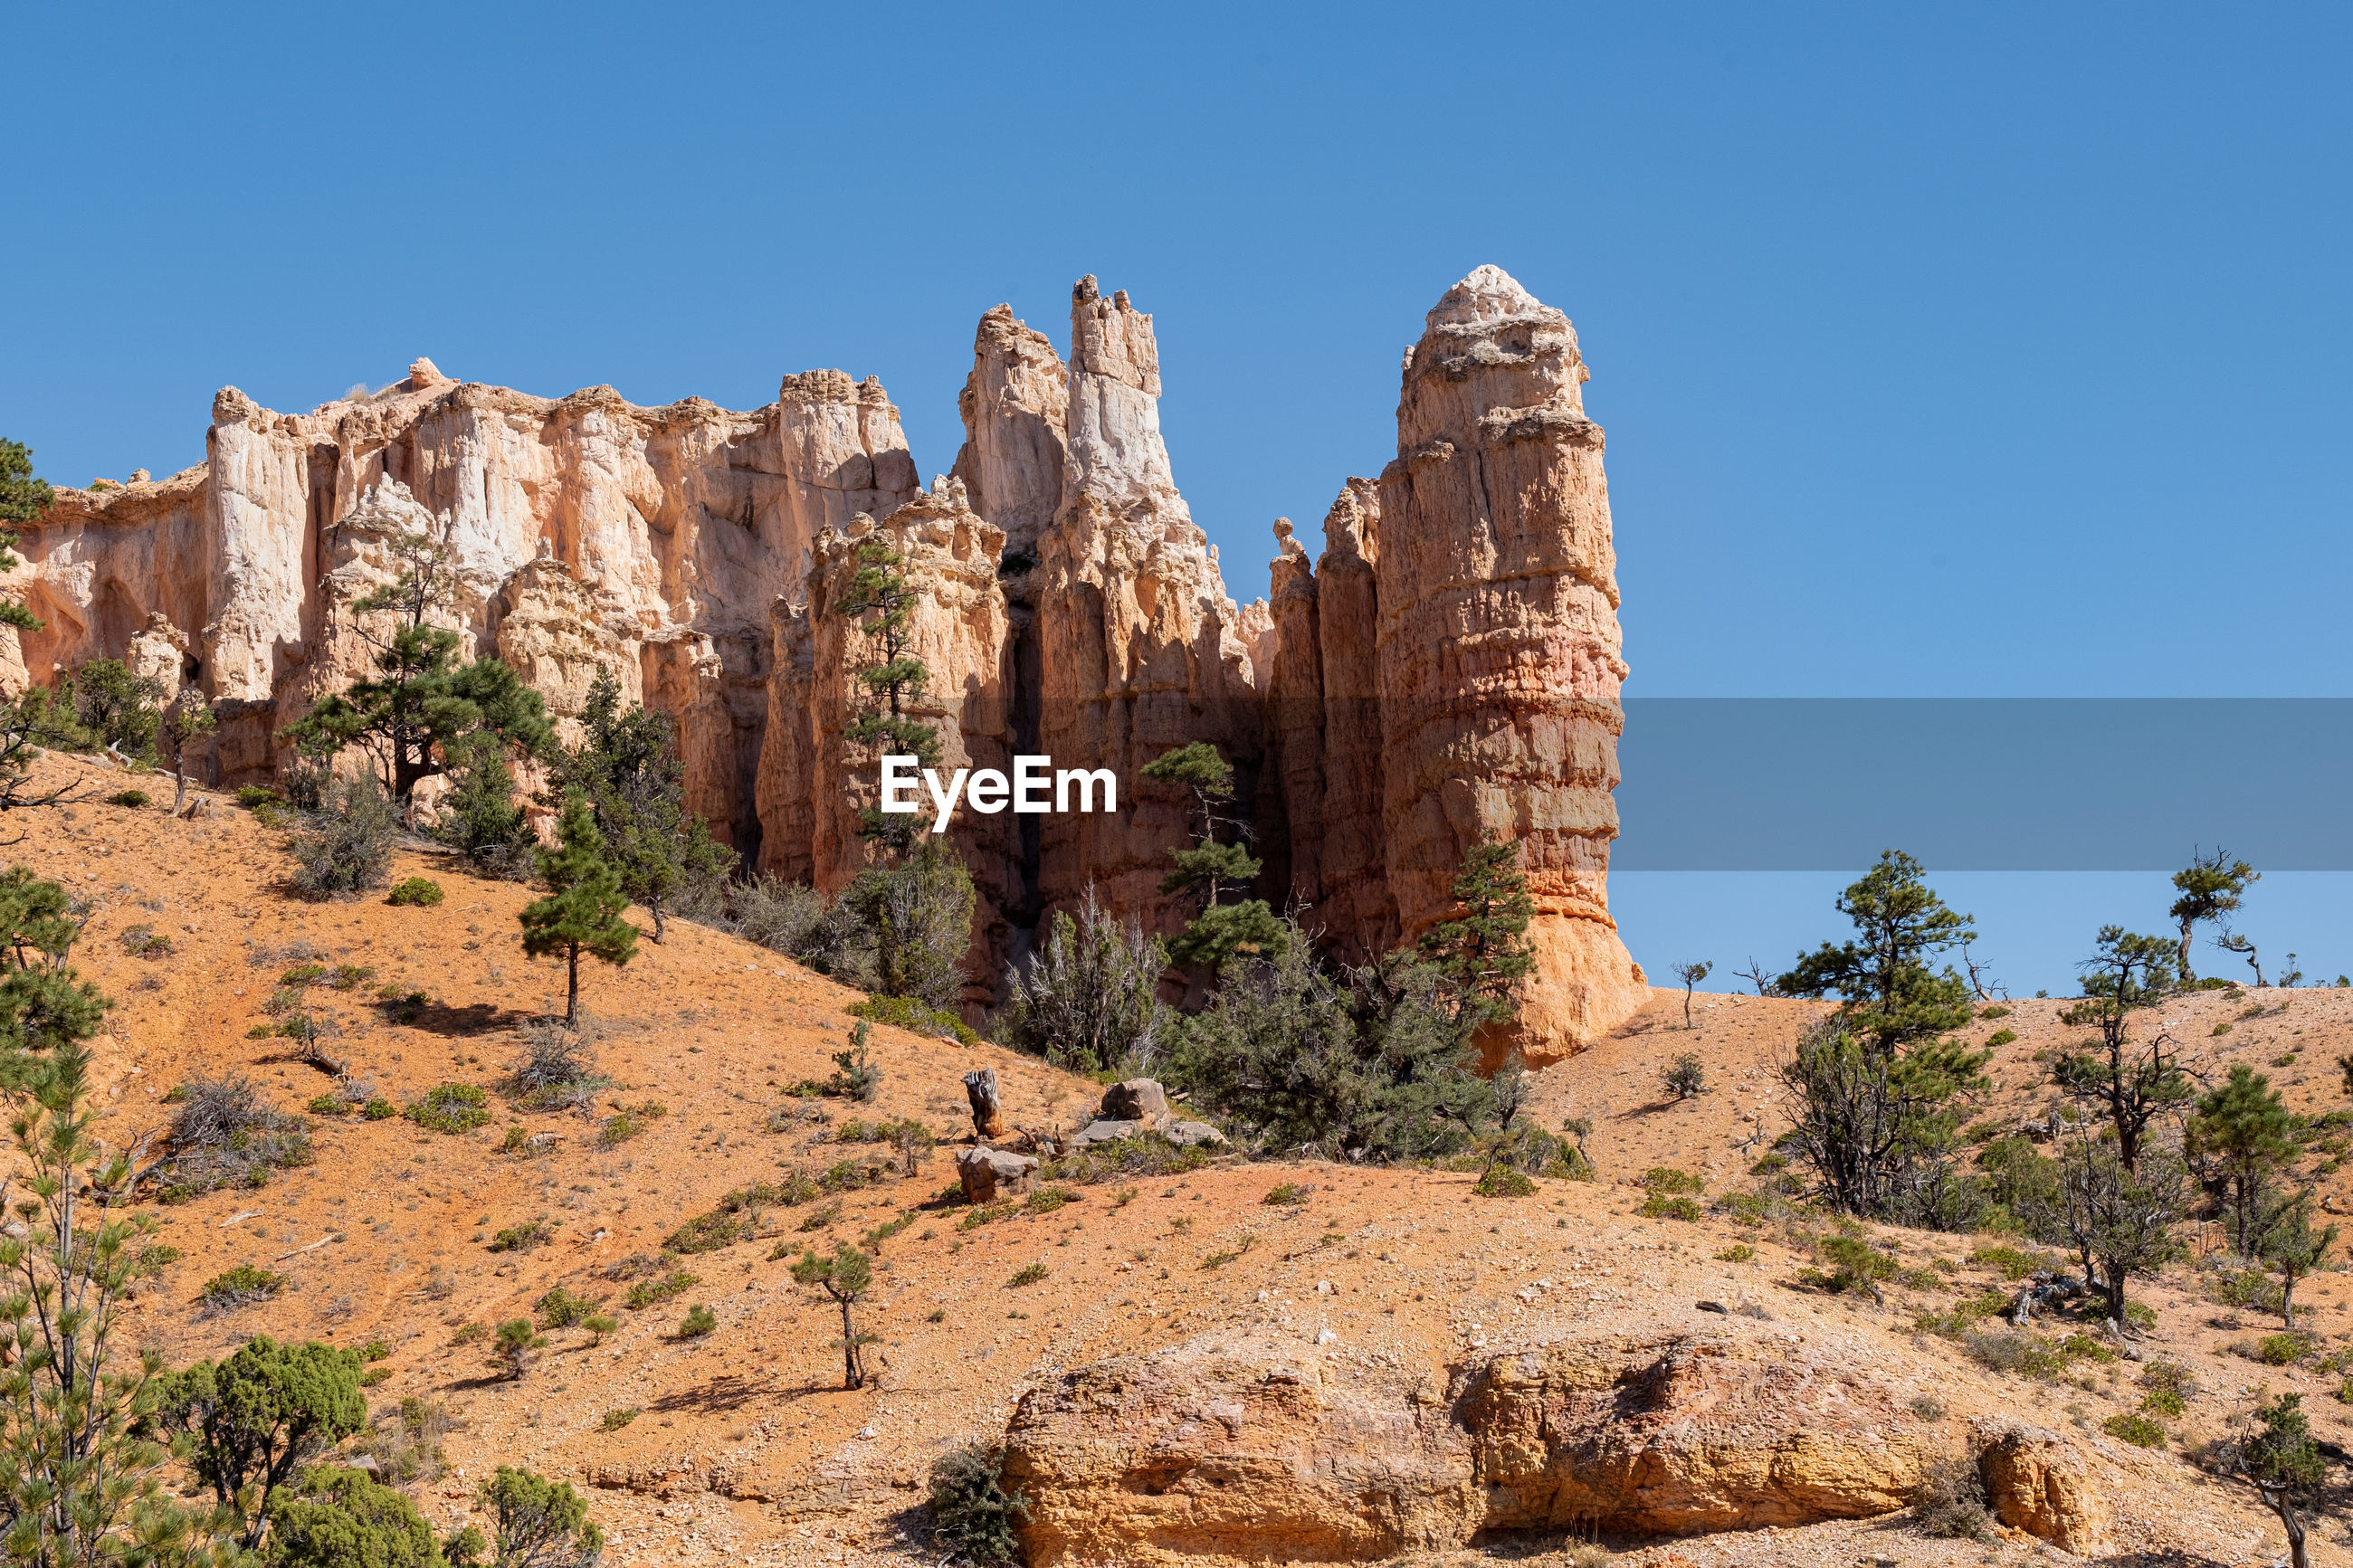 Panoramic view of rock formation against clear blue sky